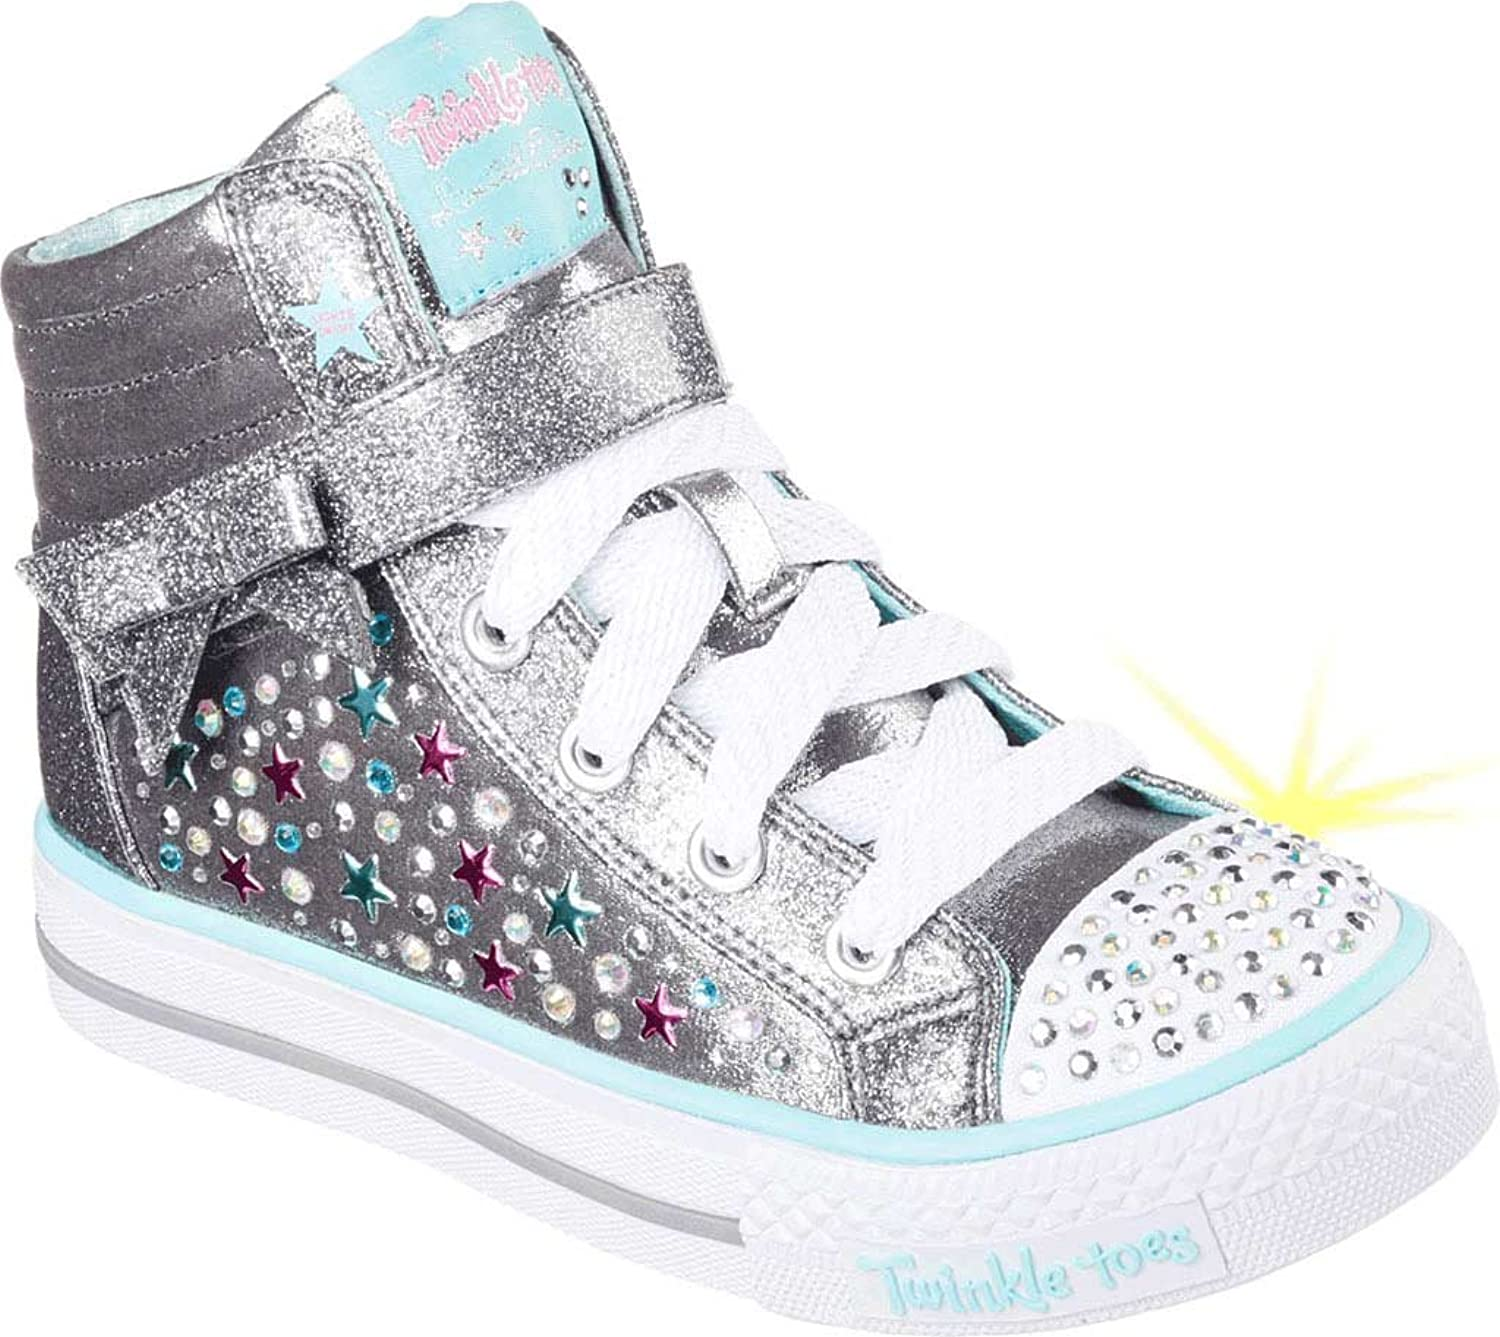 Skechers Kids Twinkle Toes Heart and Sole Light Up Sneaker (Little Kid/Big Kid/Toddler)